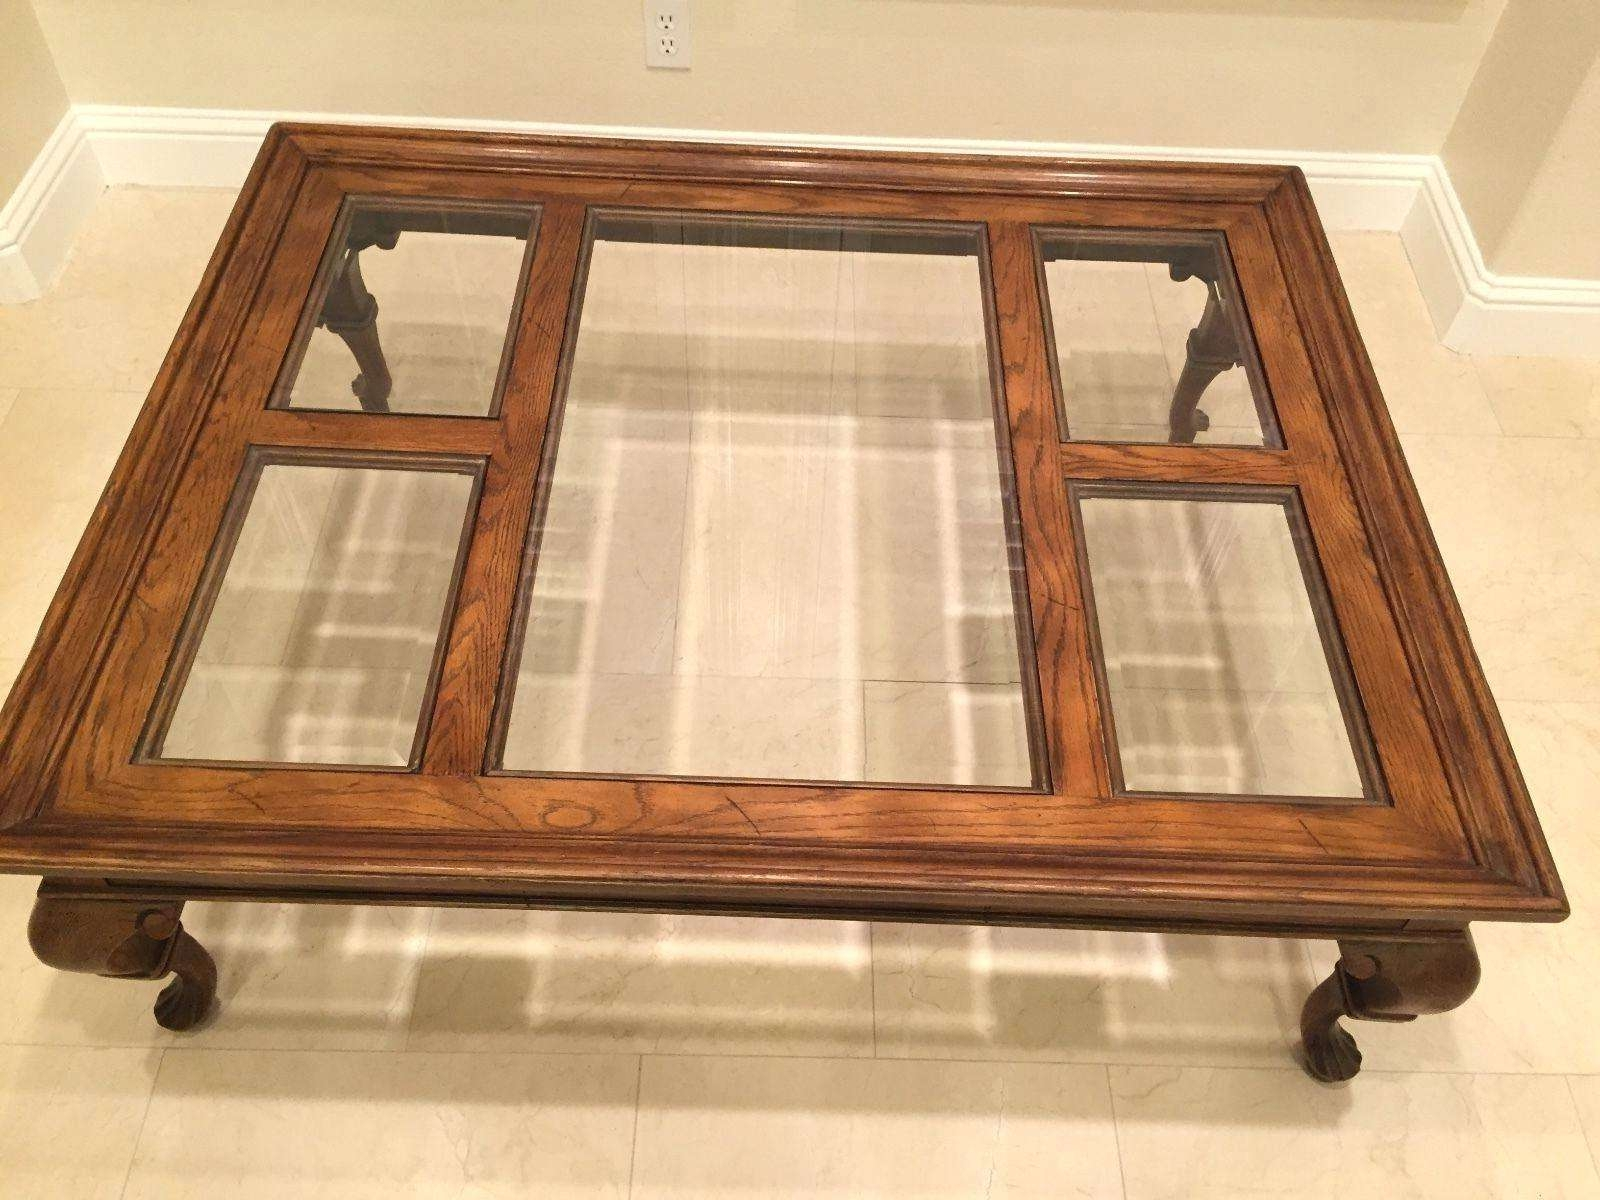 Popular Heritage Coffee Tables Pertaining To Articles With Drexel Heritage Oval Coffee Table Tag: Drexel (View 18 of 20)